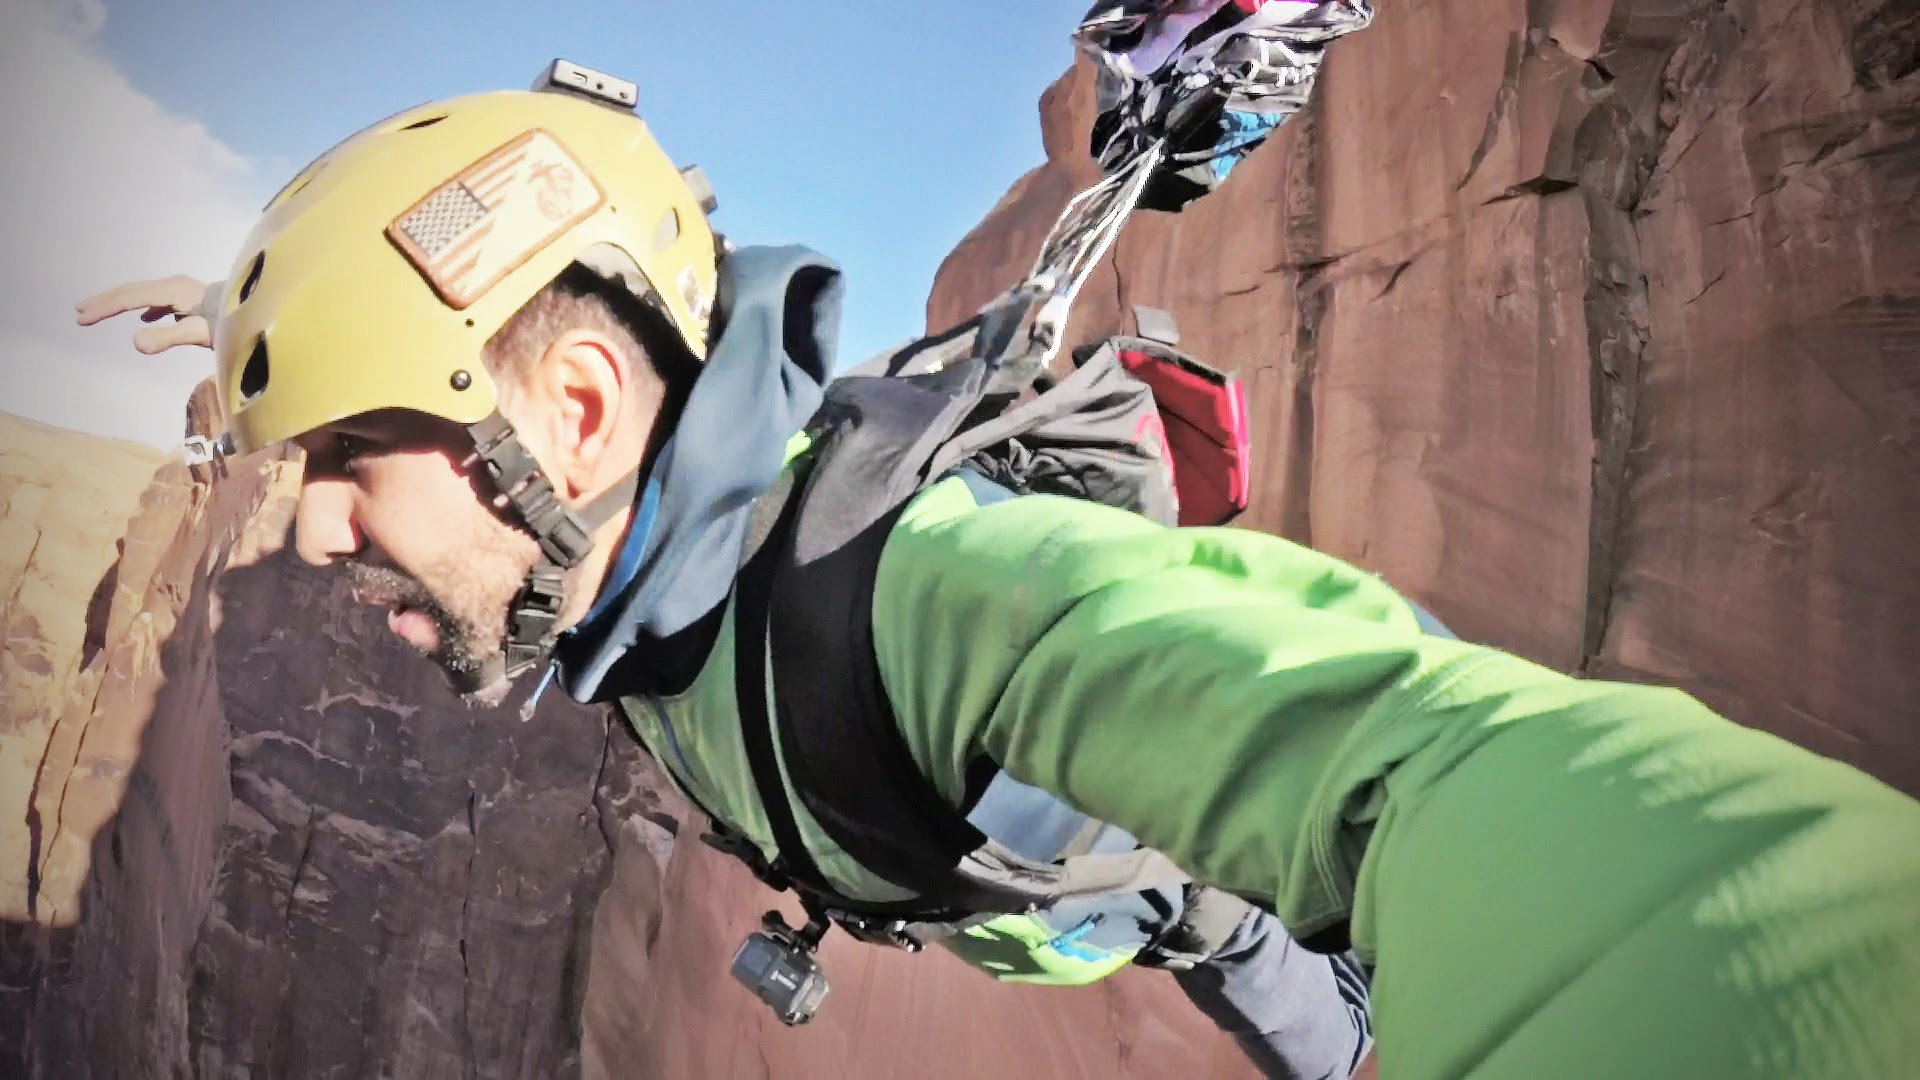 Garmin VIRB XE: Base Jumping in Moab